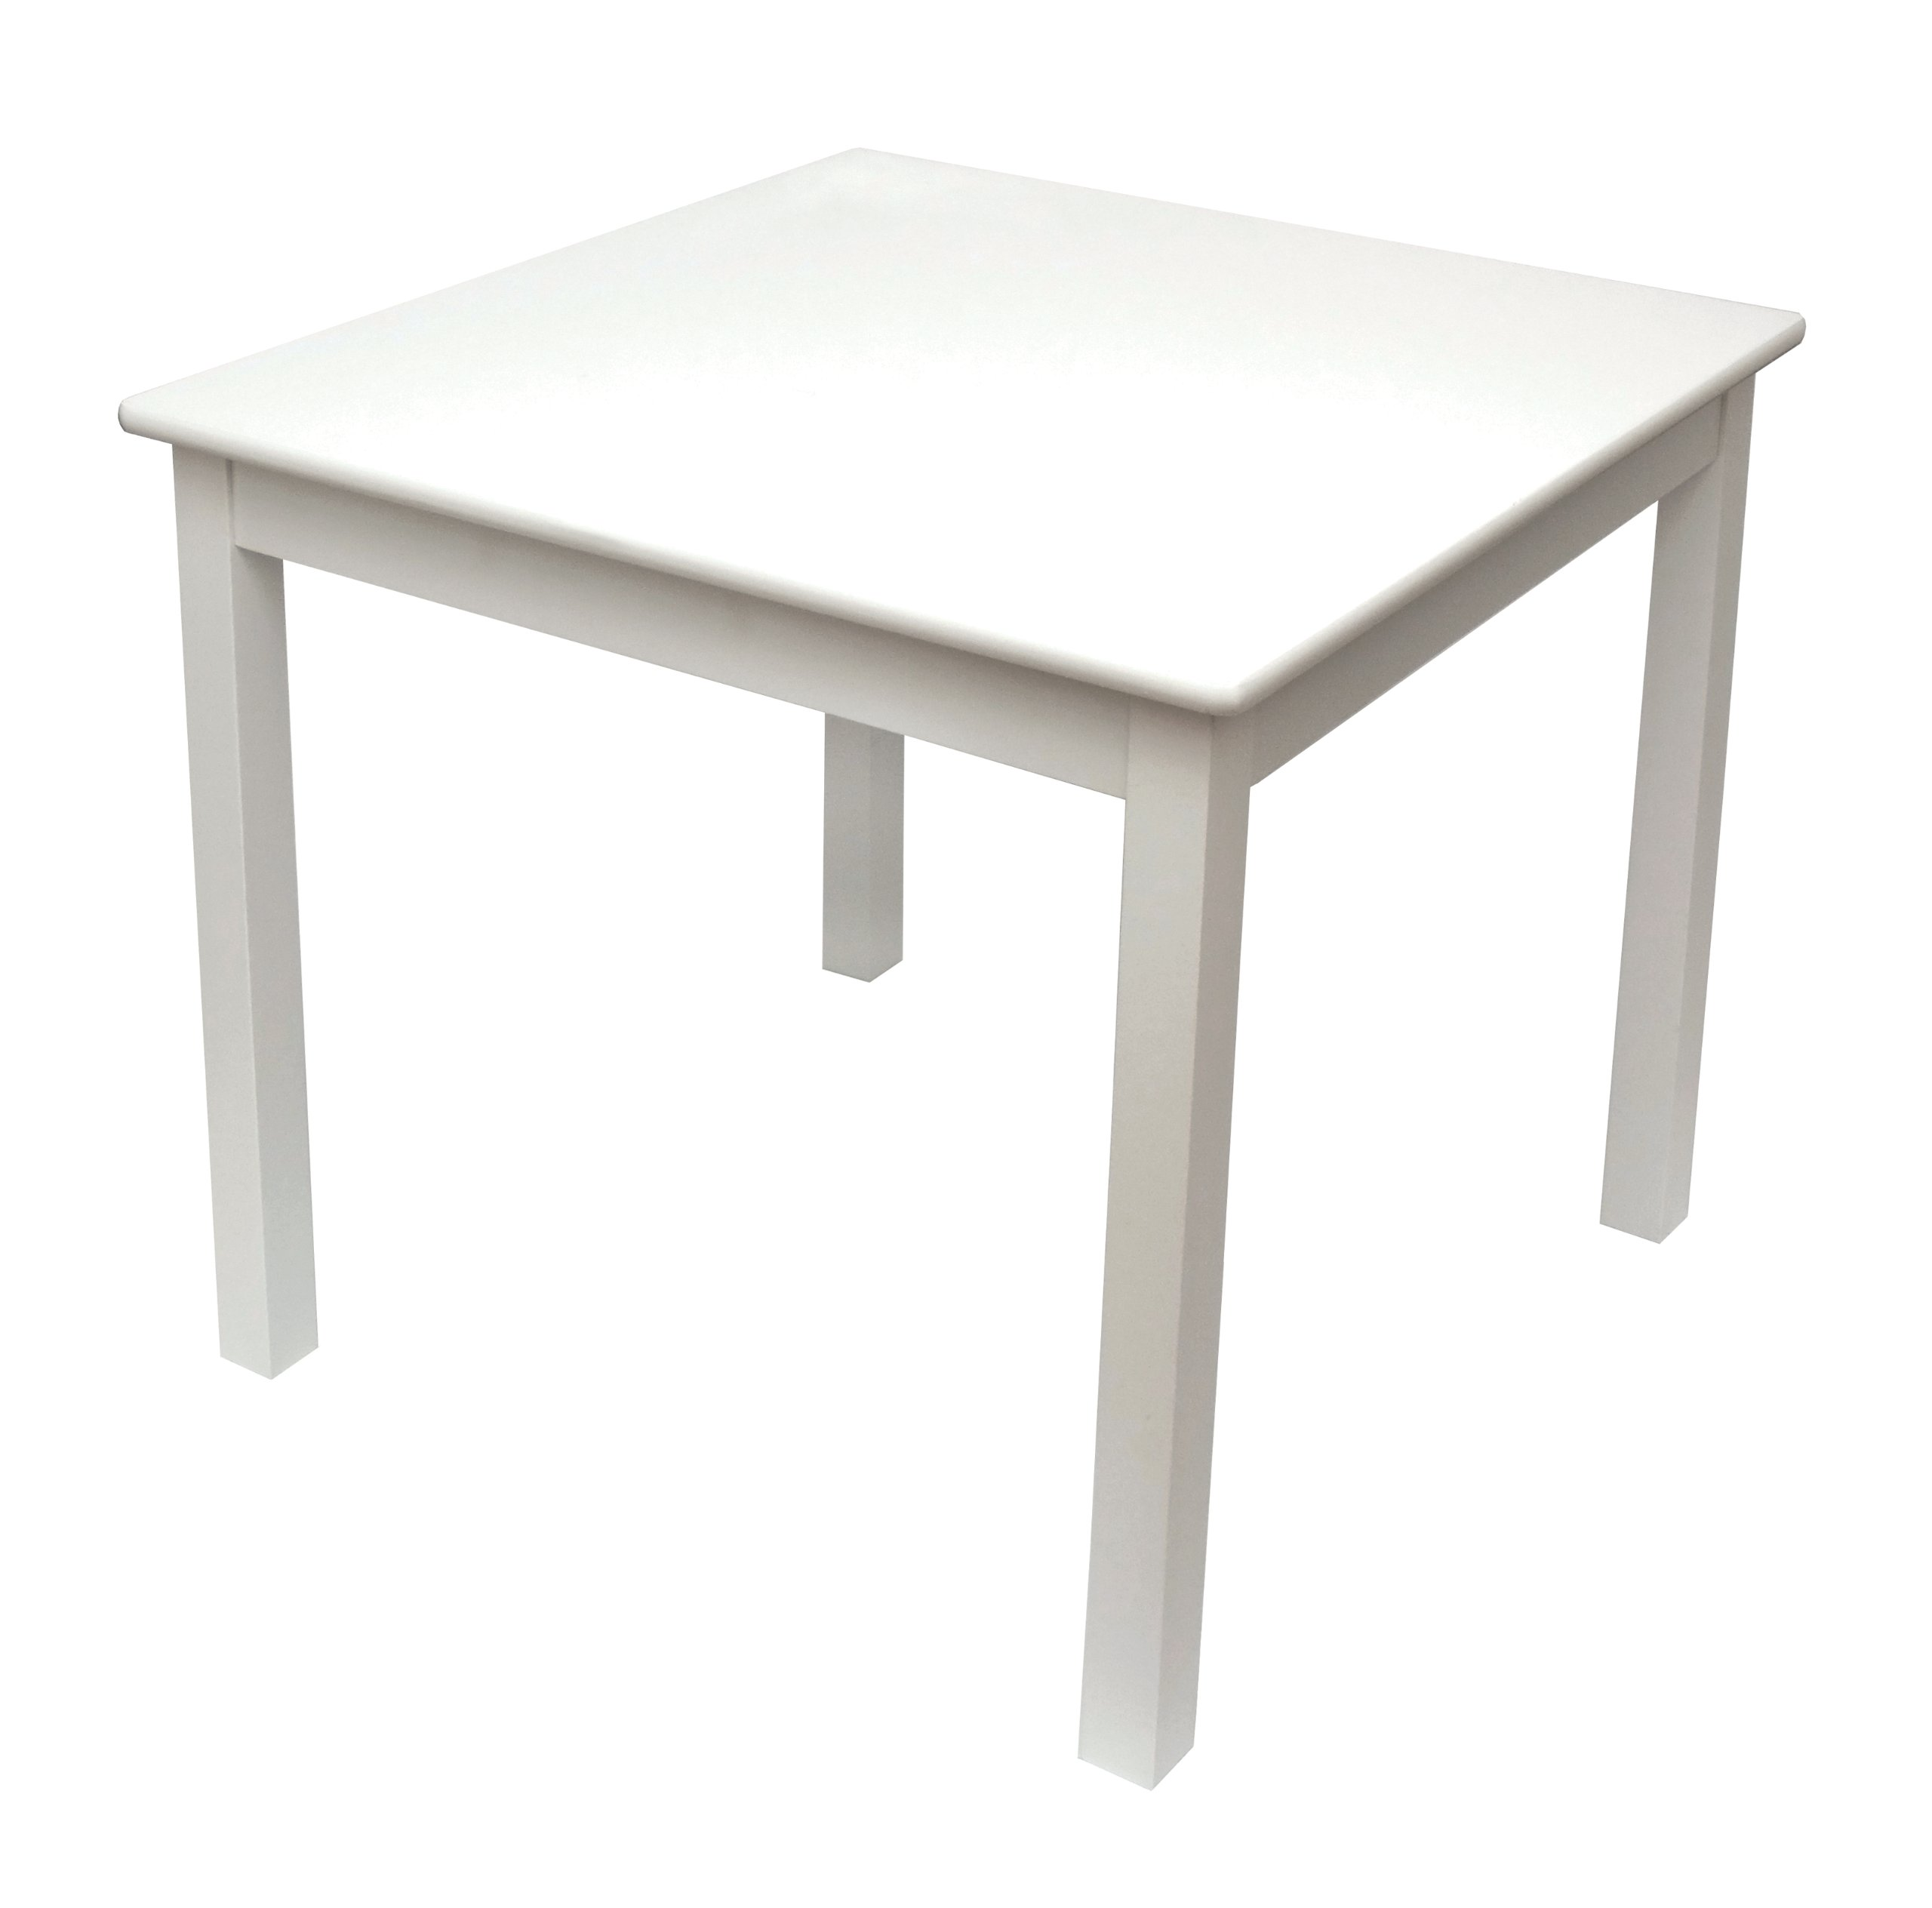 Lipper International 520W Child's Table for Play or Activity, 23.75'' x 23.75'' Square, 21.66'' Tall, White